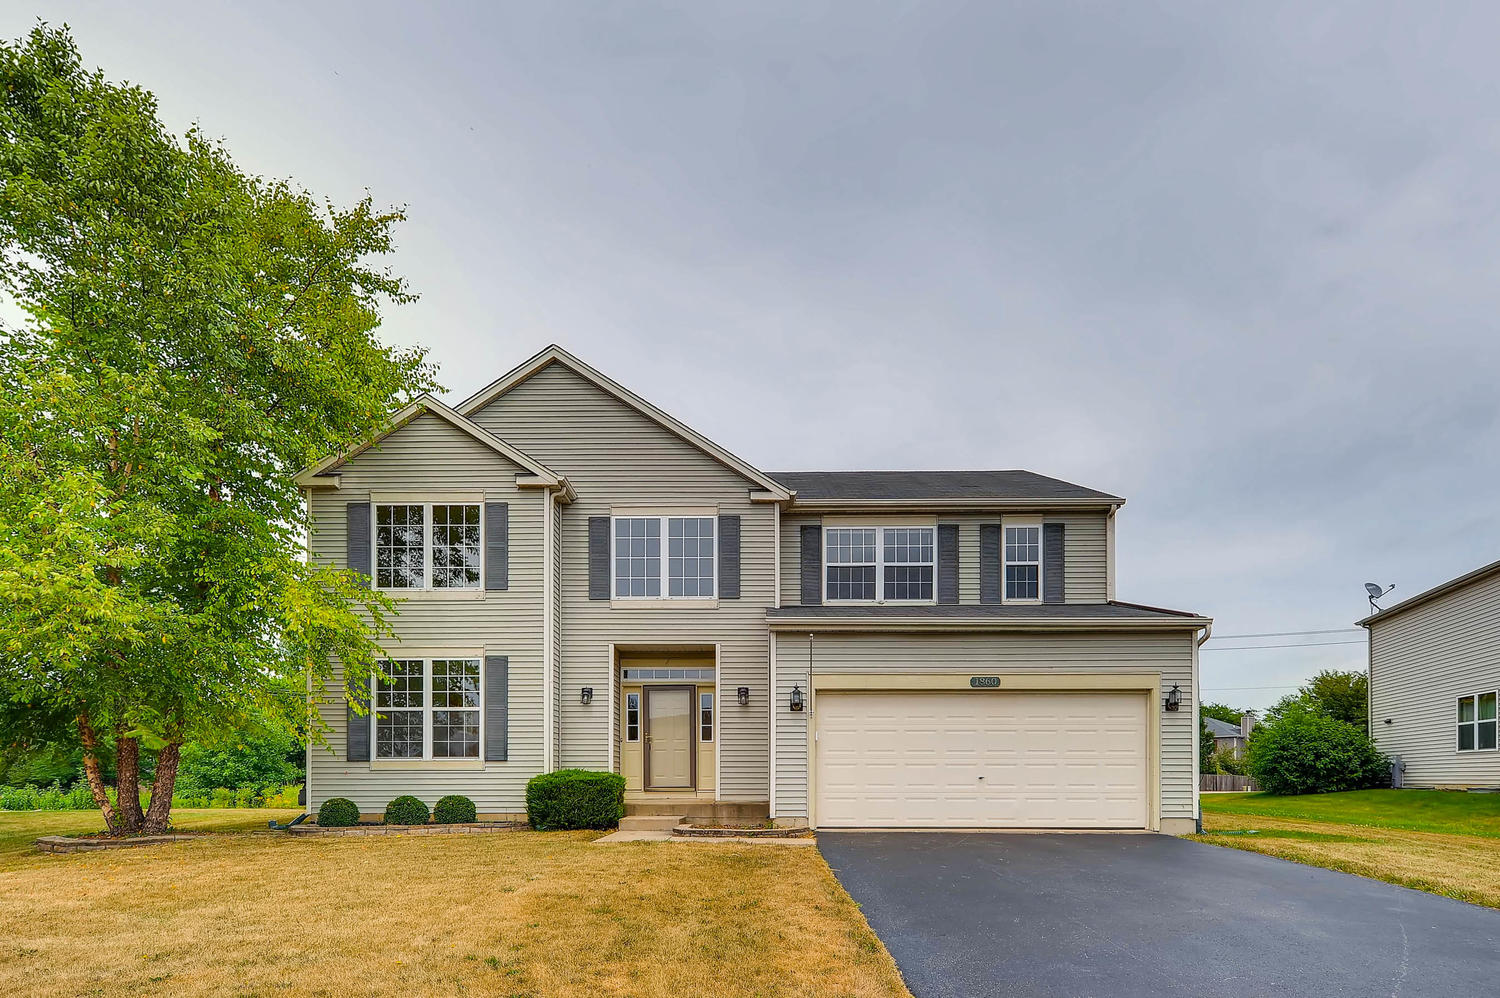 Photo of 1860 Apple Valley Drive, Wauconda, IL, 60084